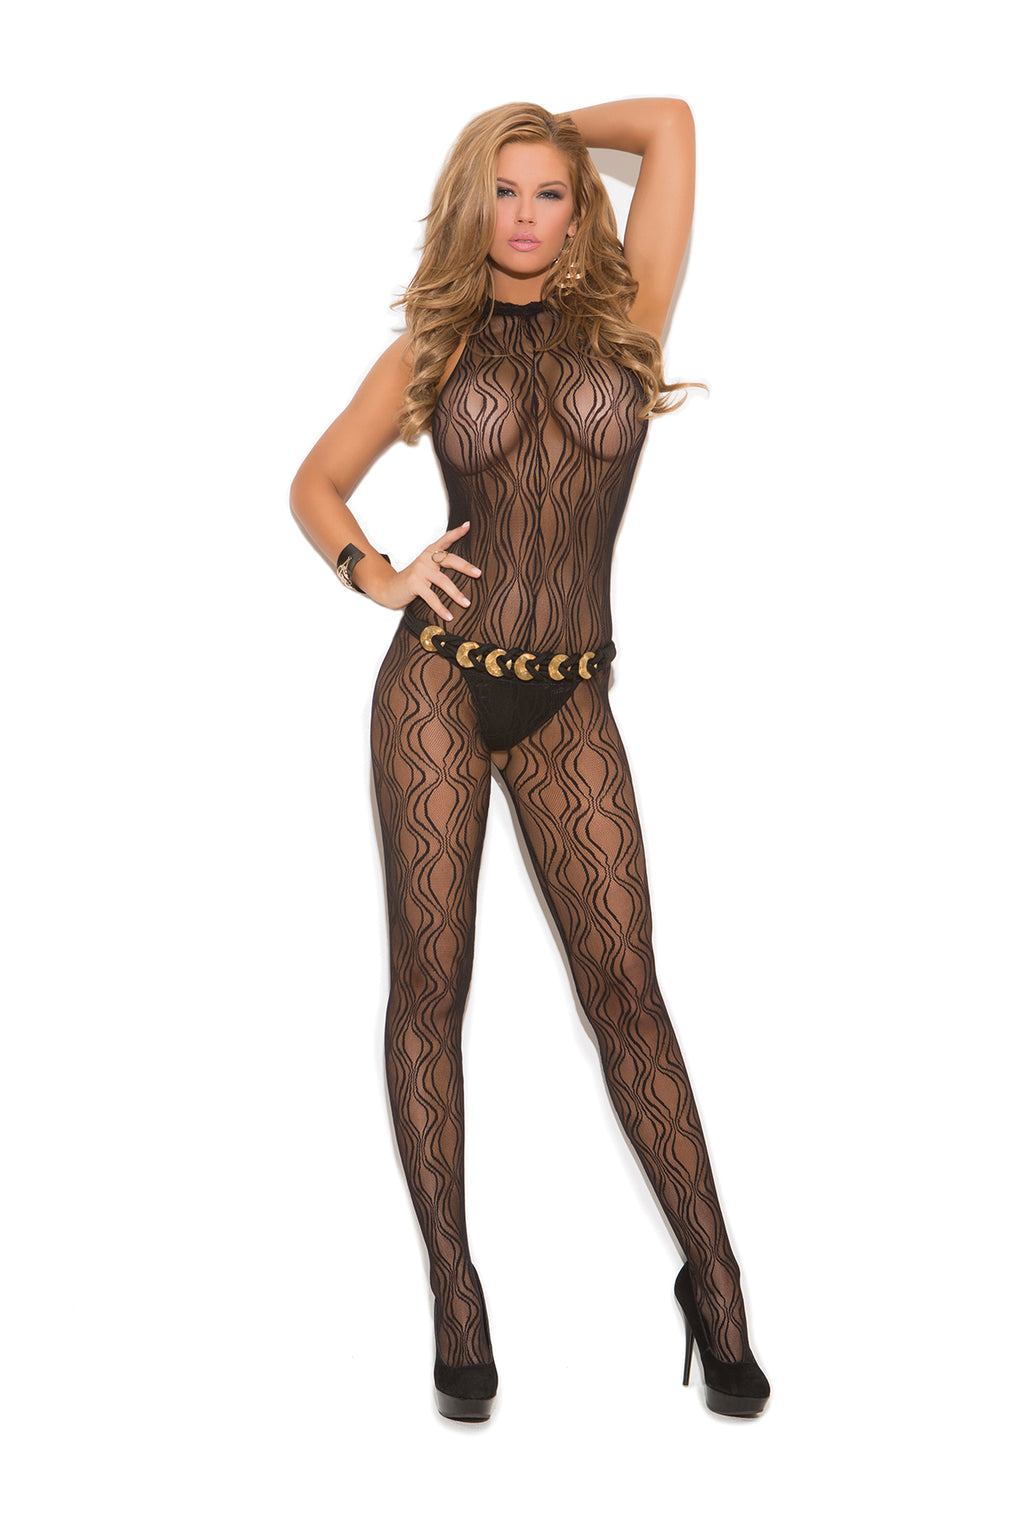 Elegant Moments 1602 Swirl Lace Black Bodystocking